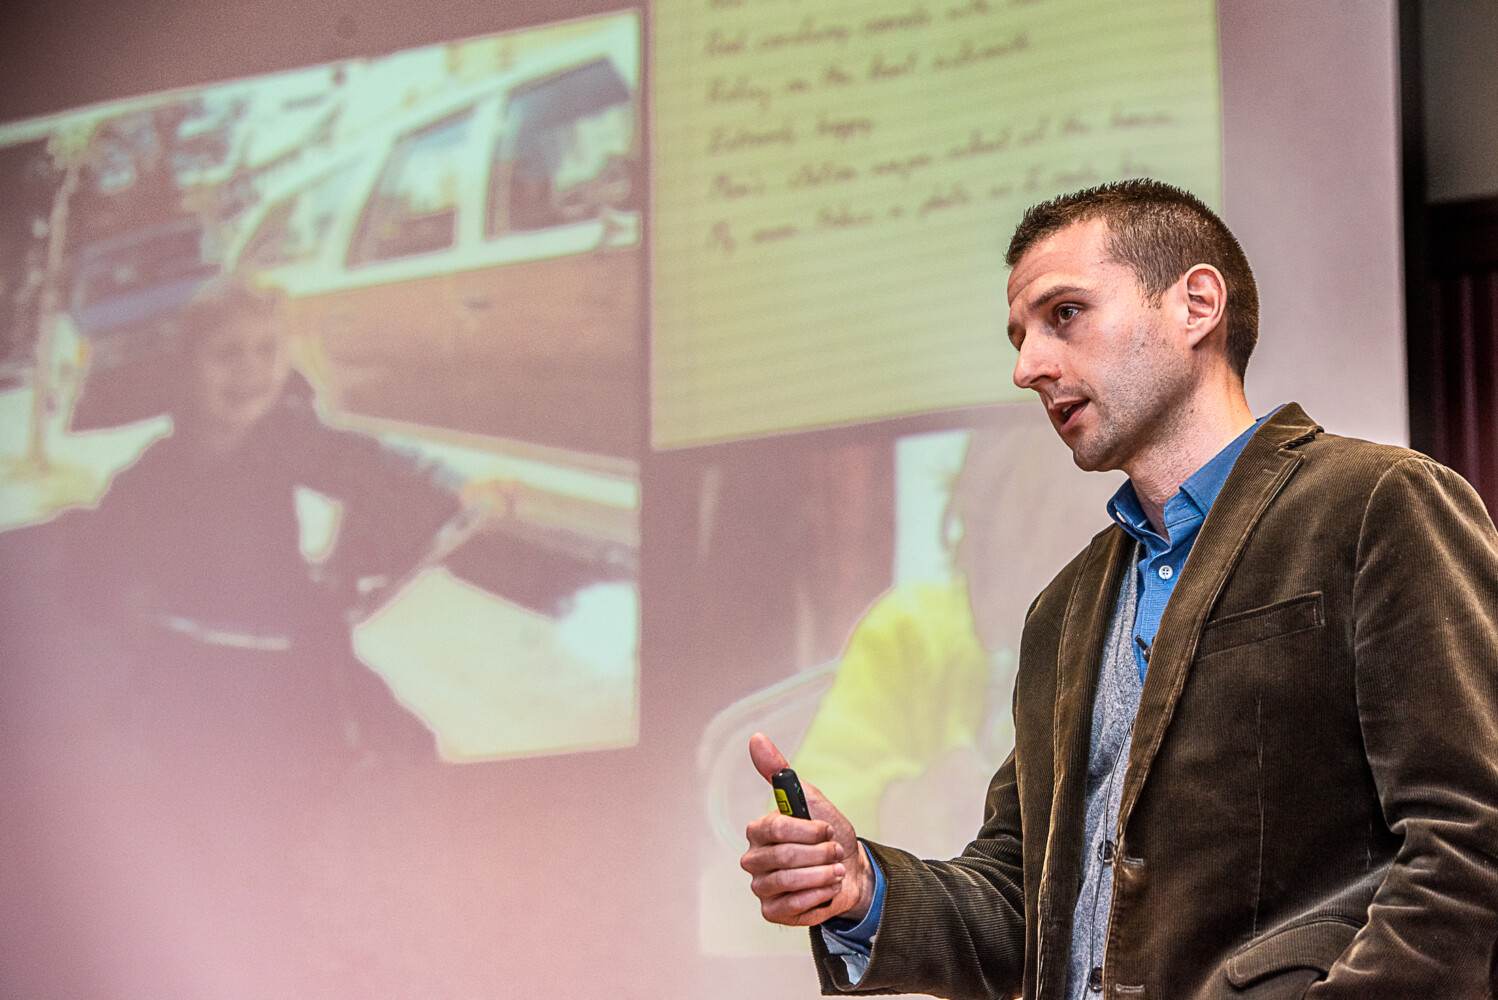 Bates College professor at leading the way in the science of memory - CentralMaine.com